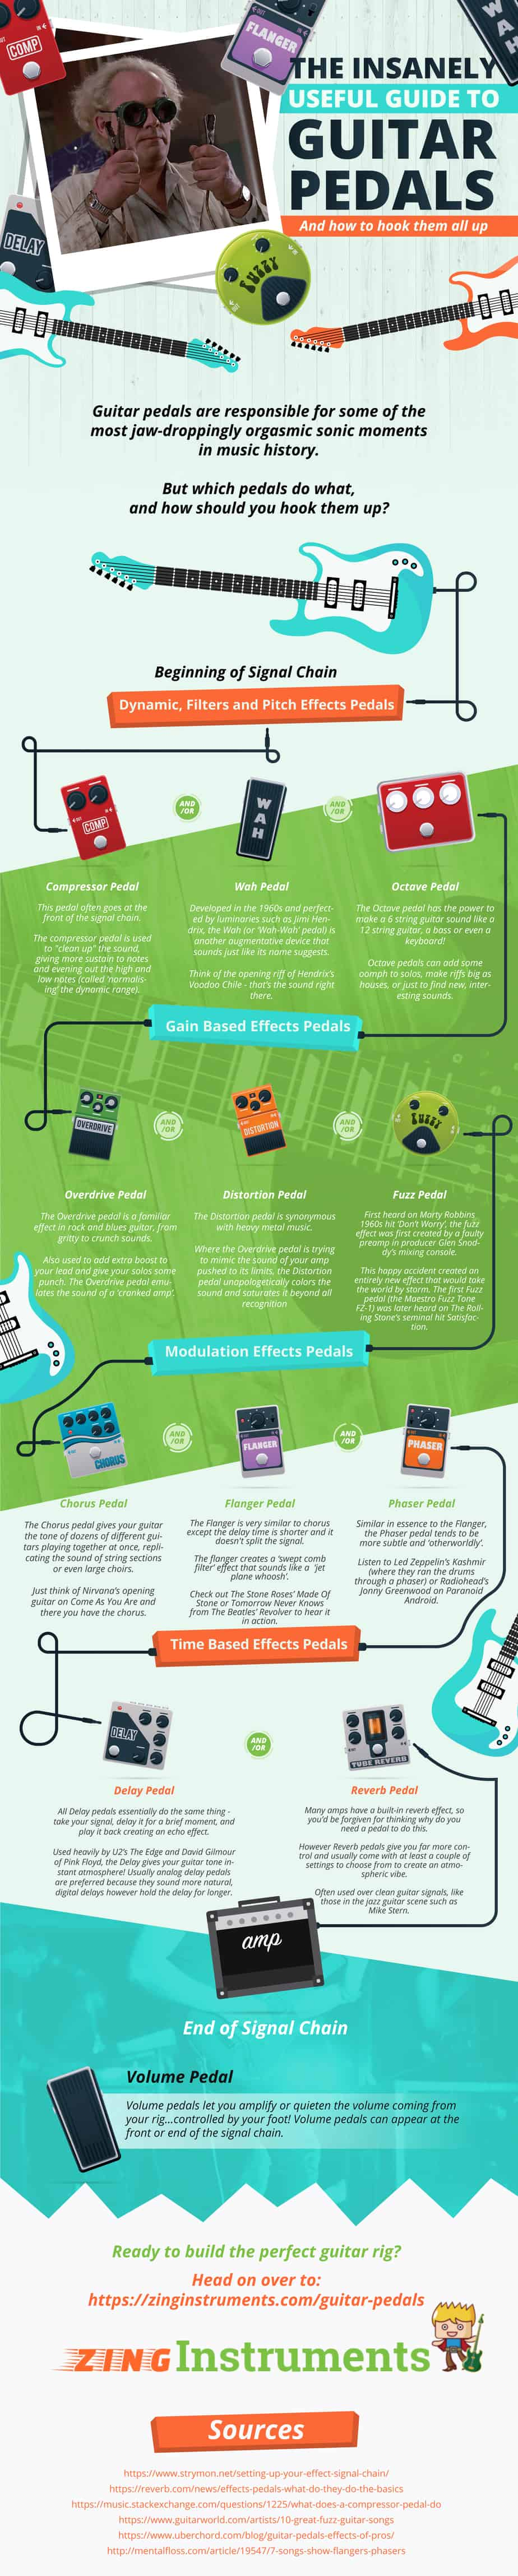 How to Become a Guitar Ninja: The Zaniest and Super-Useful Guide to Guitar Pedals - Infographic